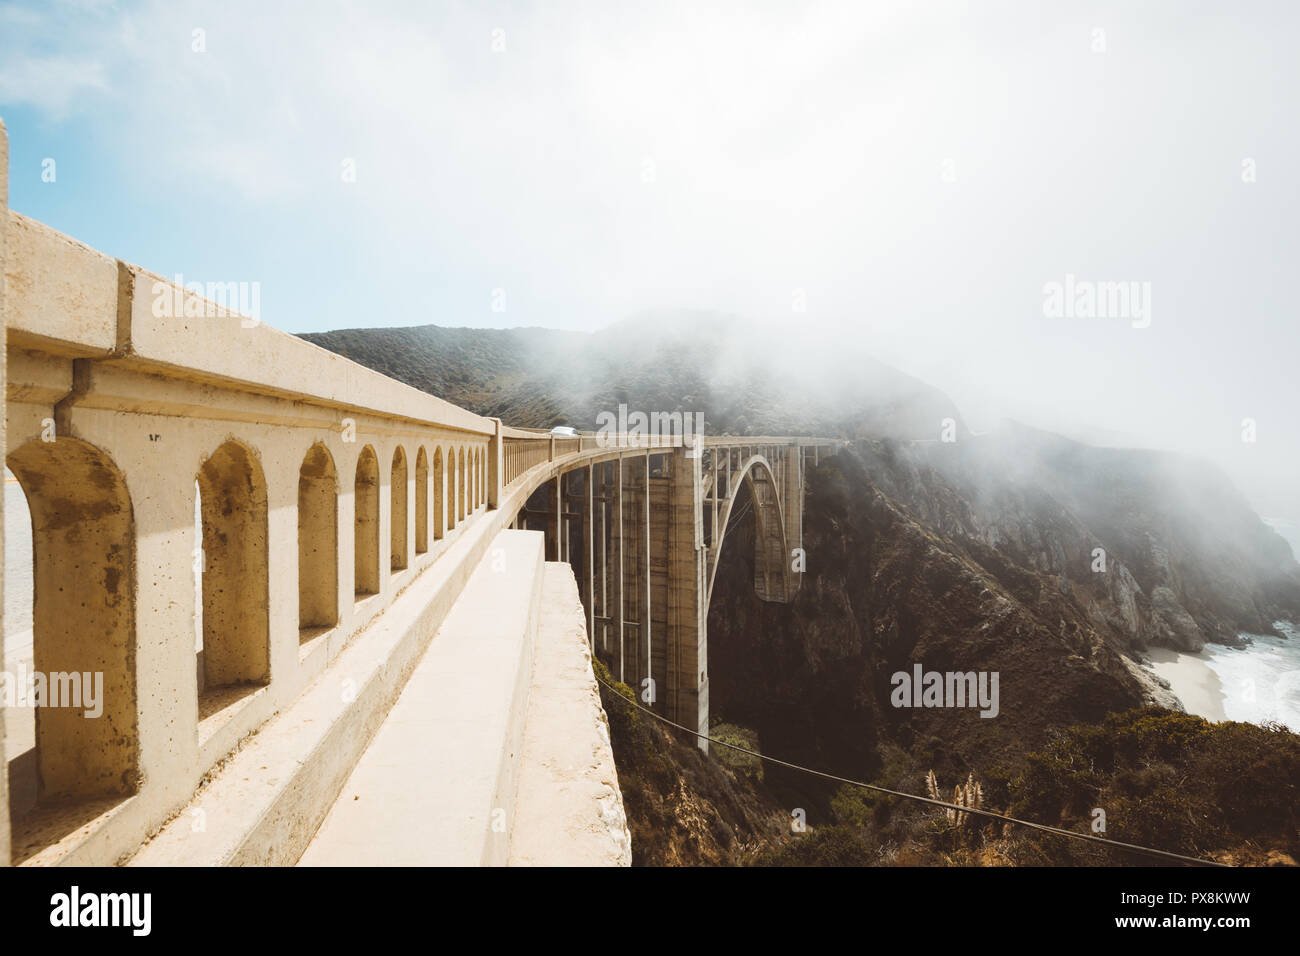 Panoramic view of historic Bixby Creek Bridge along world famous Highway 1 on a sunny day with fog in summer, Monterey County, California, USA - Stock Image